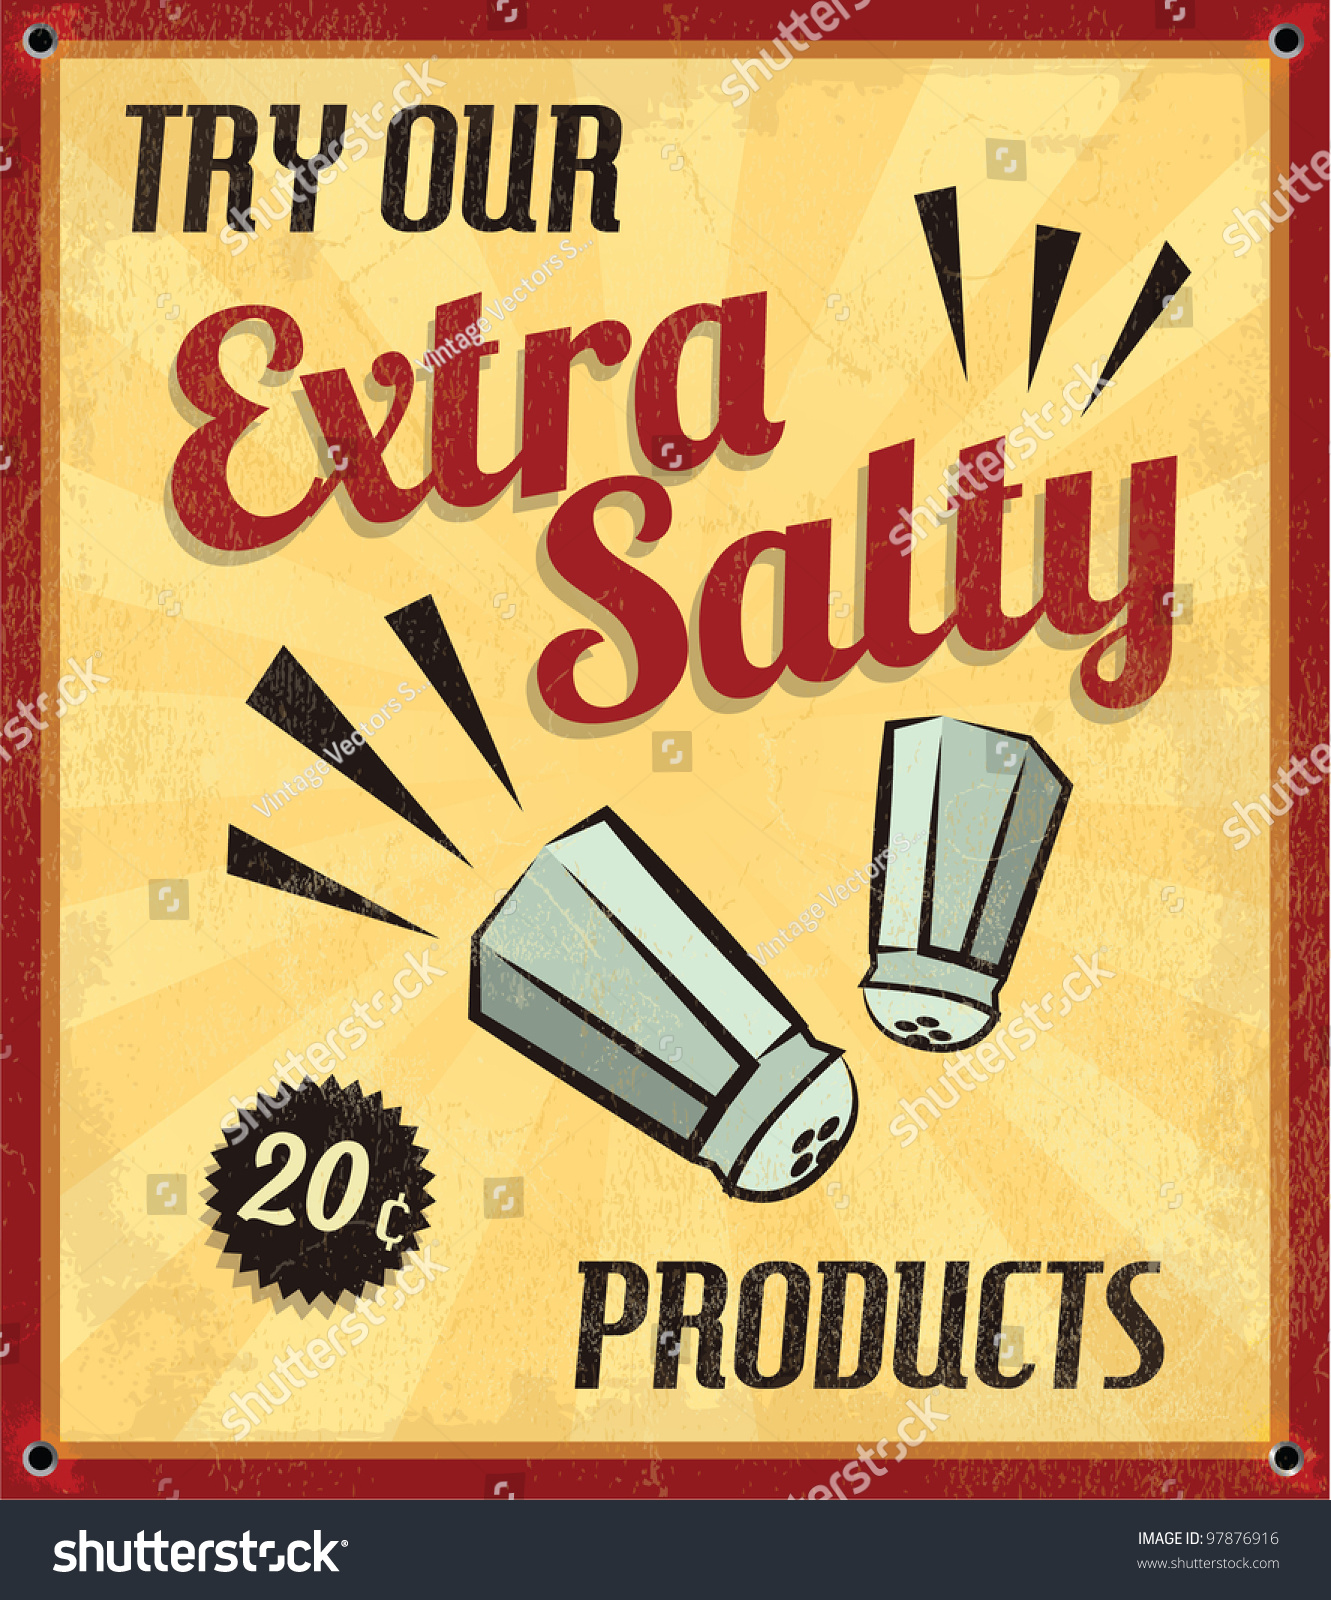 stock-vector-retro-vintage-extra-salty-t